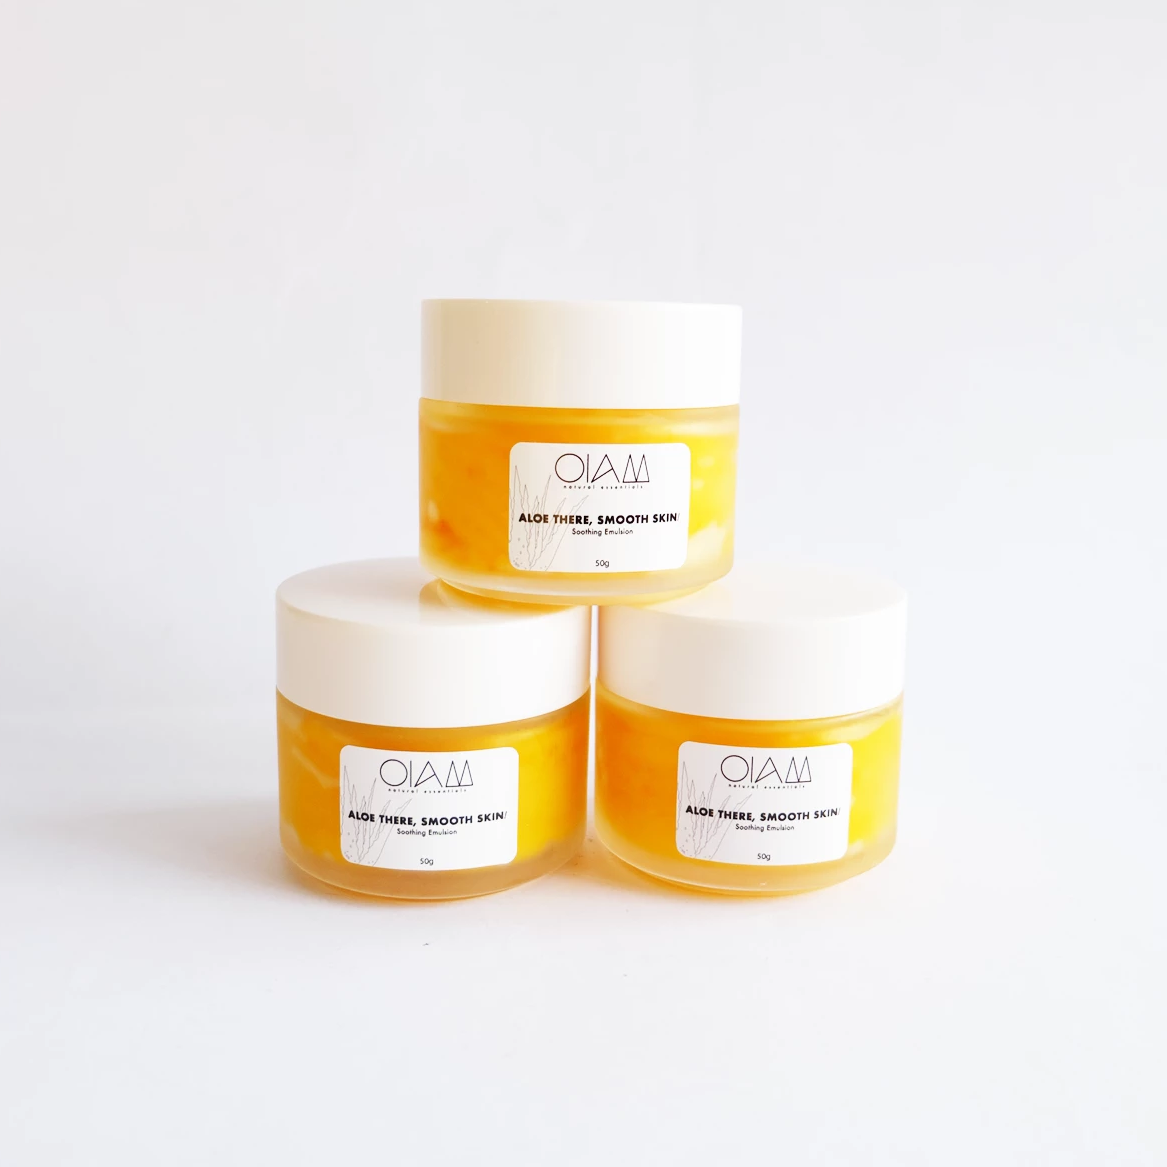 ALOE THERE, SMOOTH SKIN! Bundle - Low In Stock